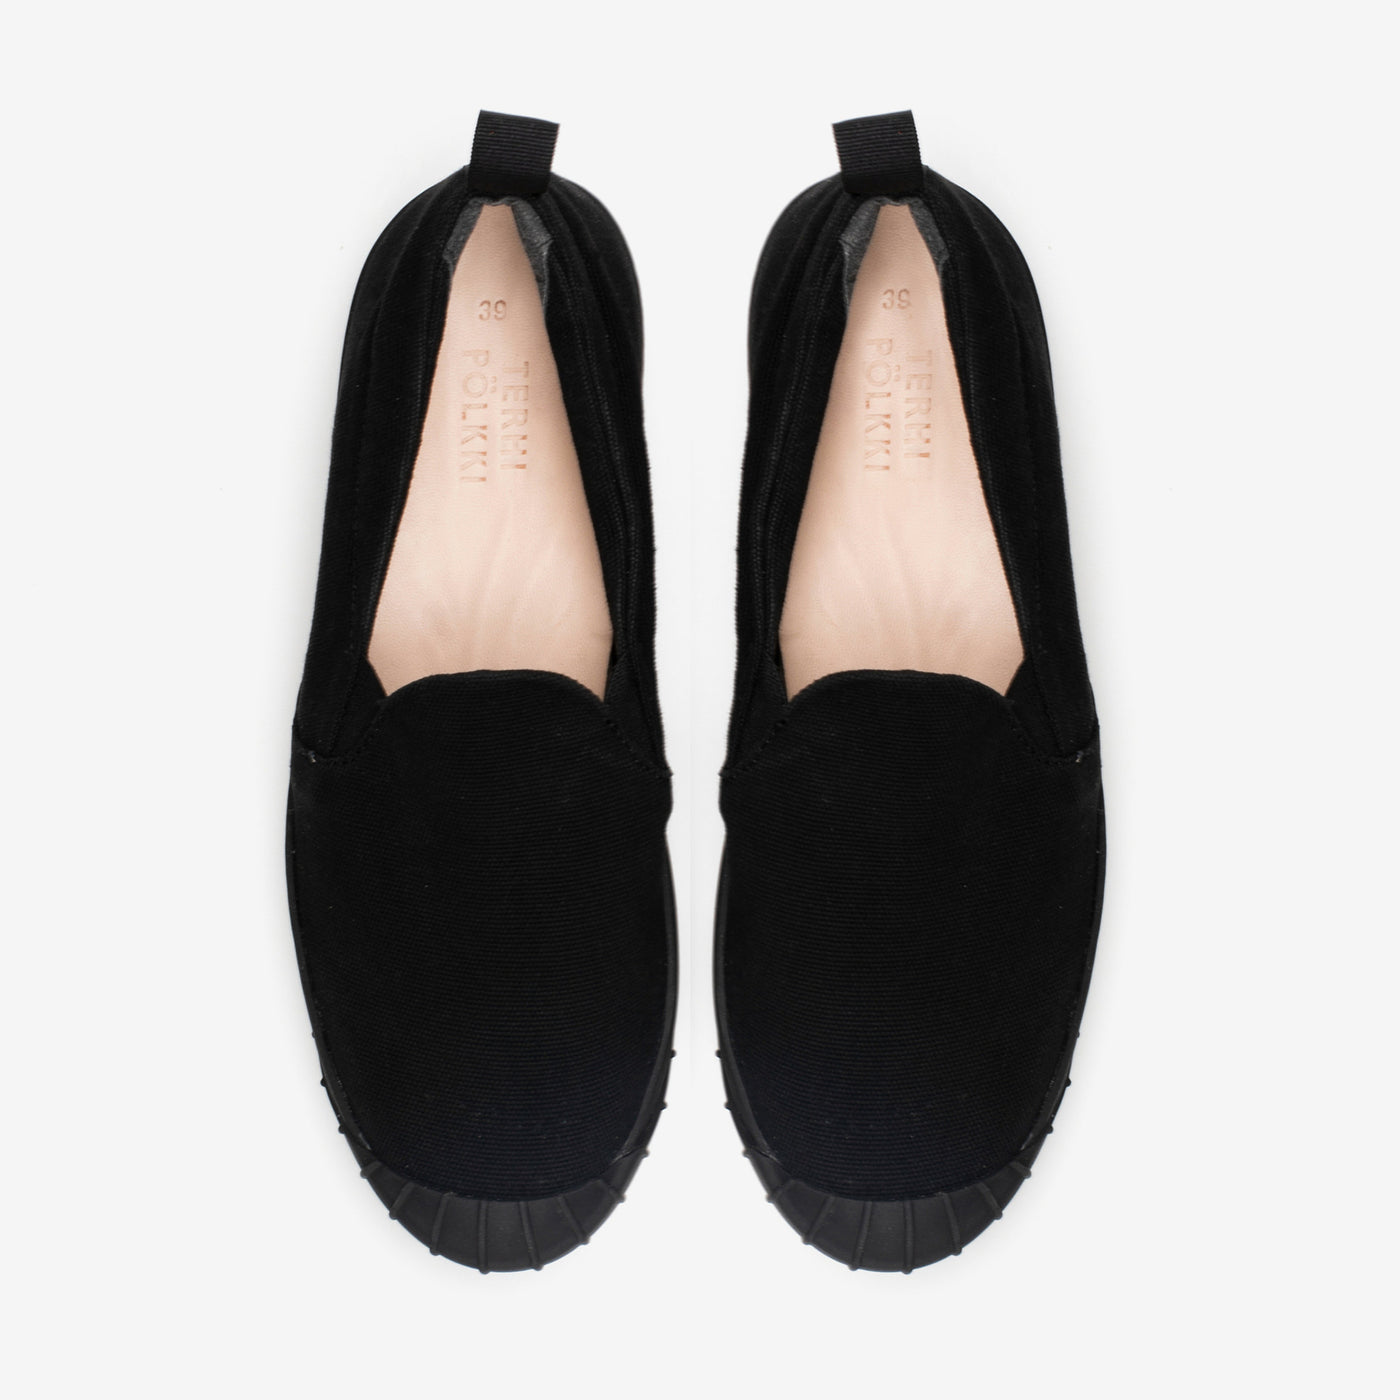 EMMI SLIP-ON BLACK